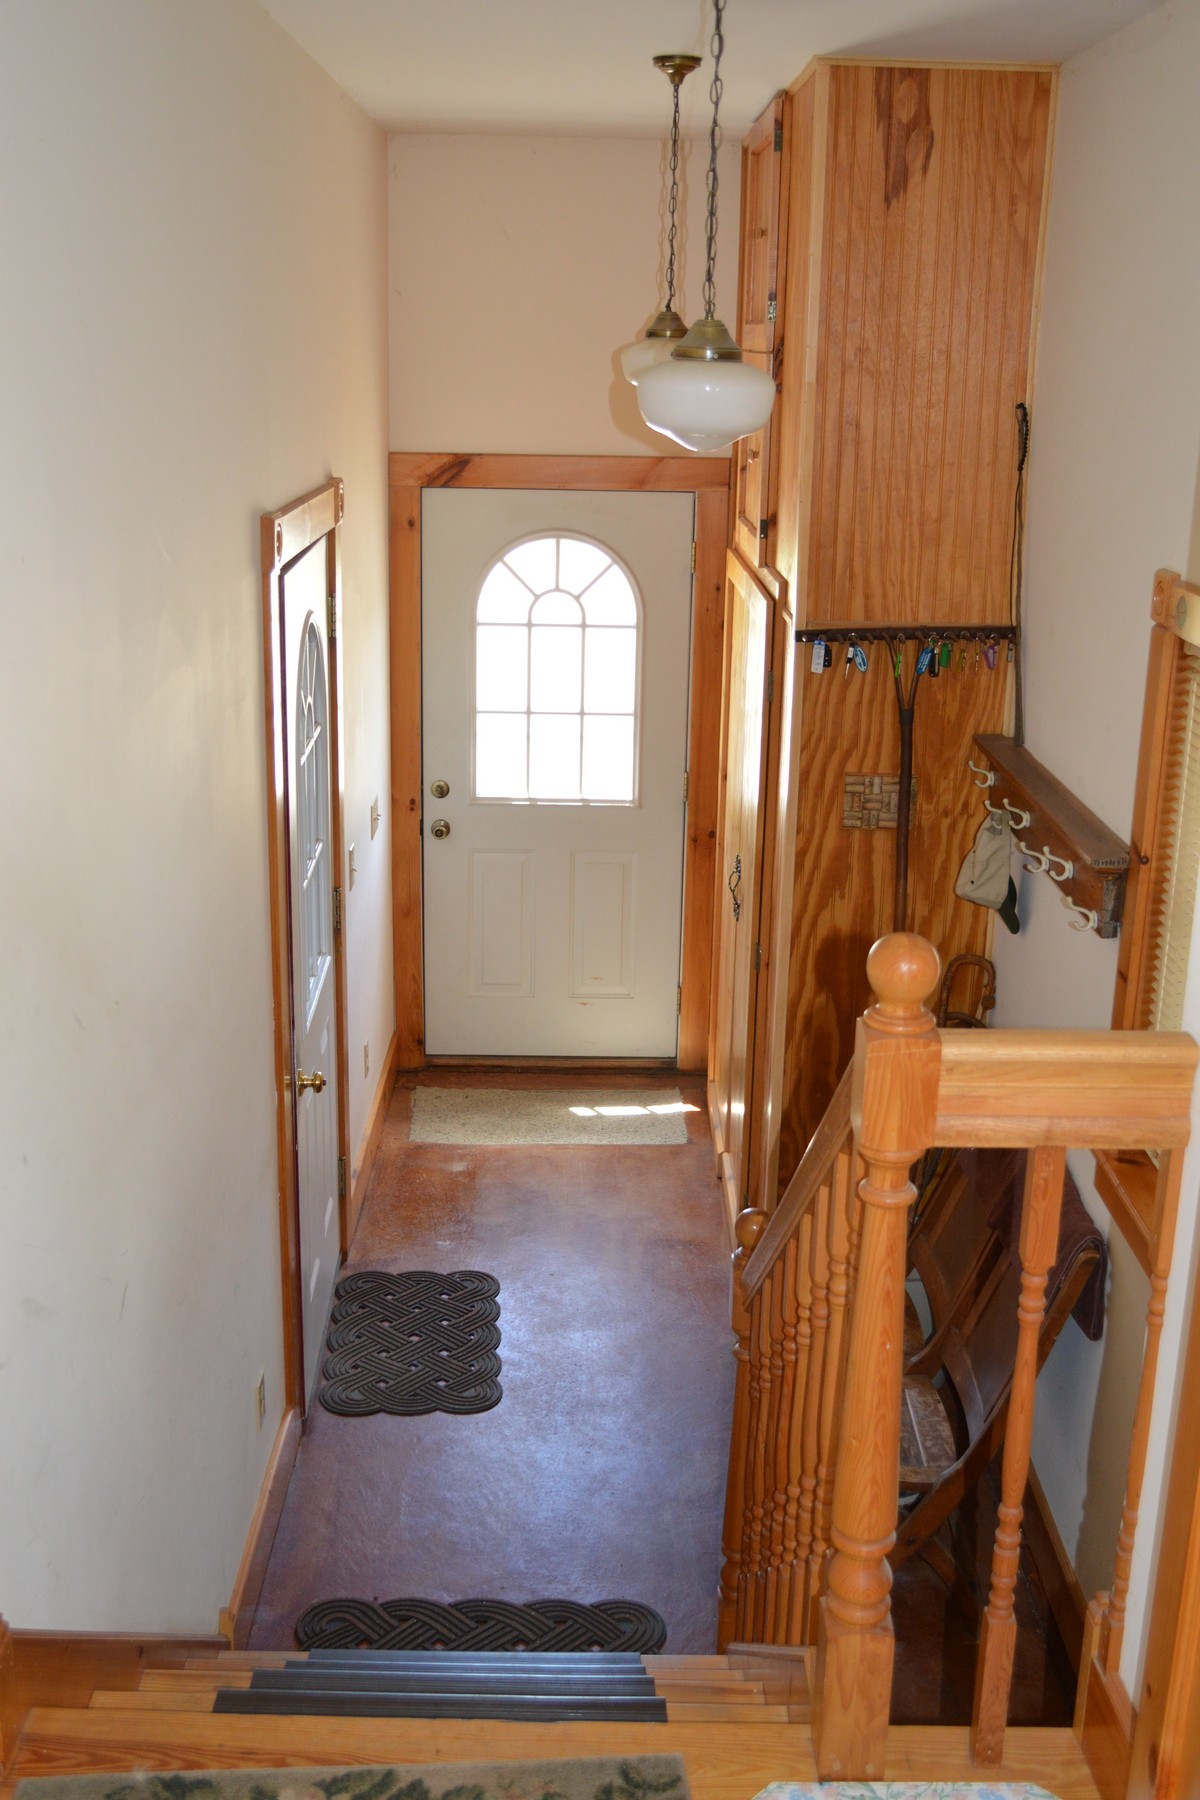 Additional photo for property listing at Country Colonial with Organic Farm 40  Woodell Rd Middle Granville, New York 12849 United States